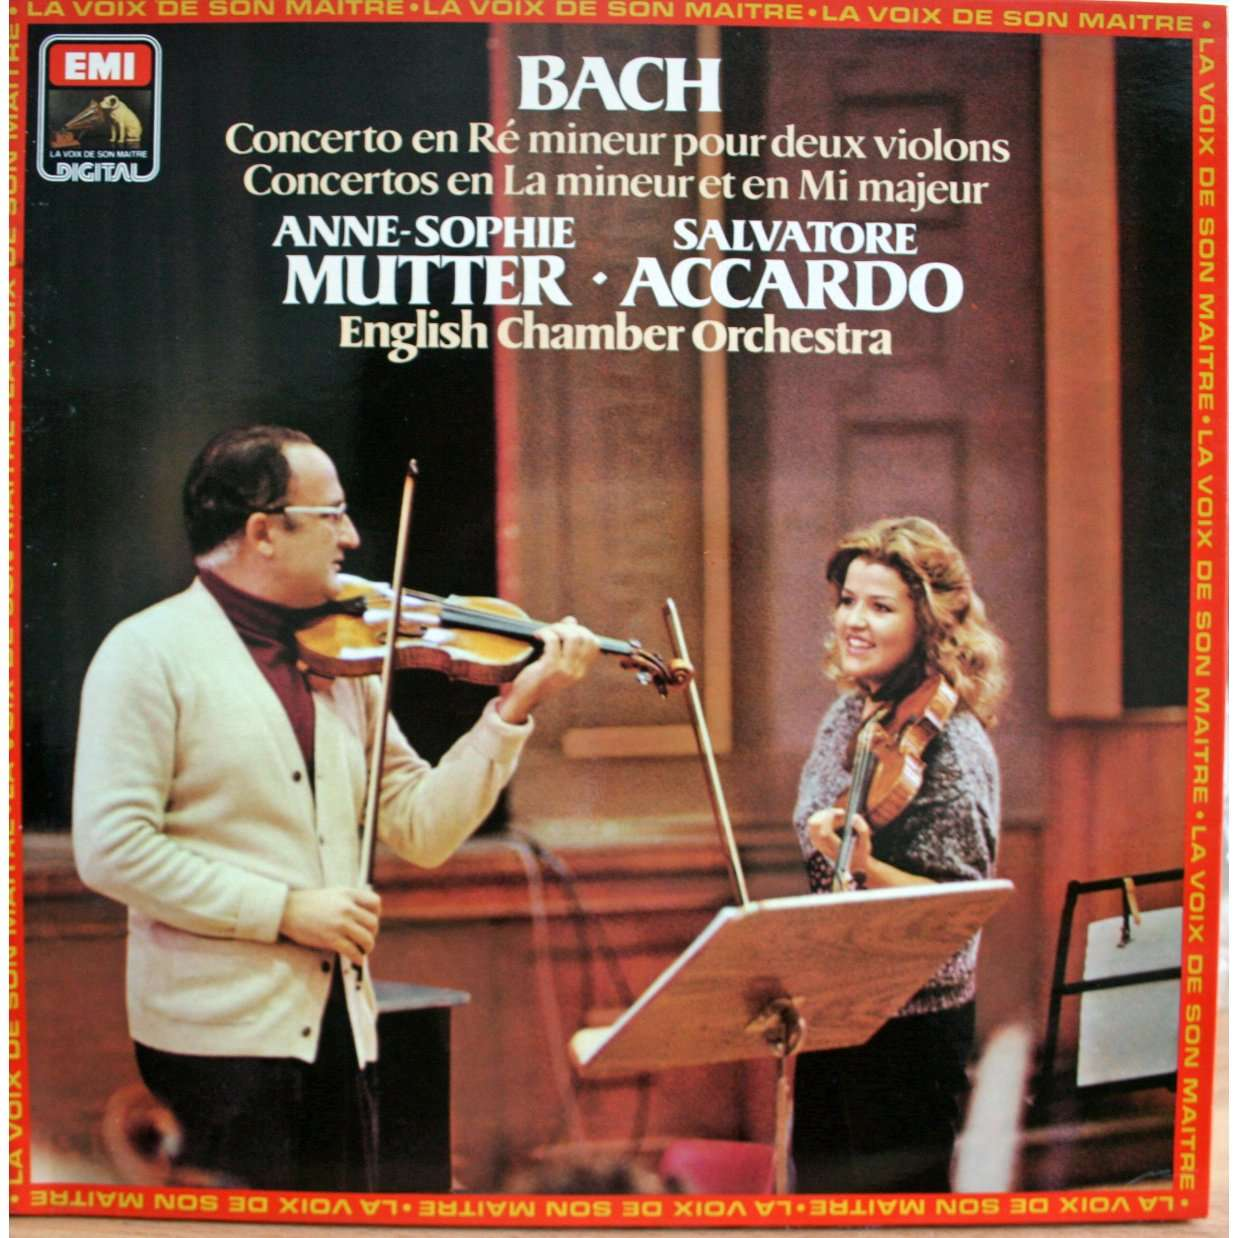 Bach violin concertos by Accardo & Mutter, LP with chapoultepek69 ...